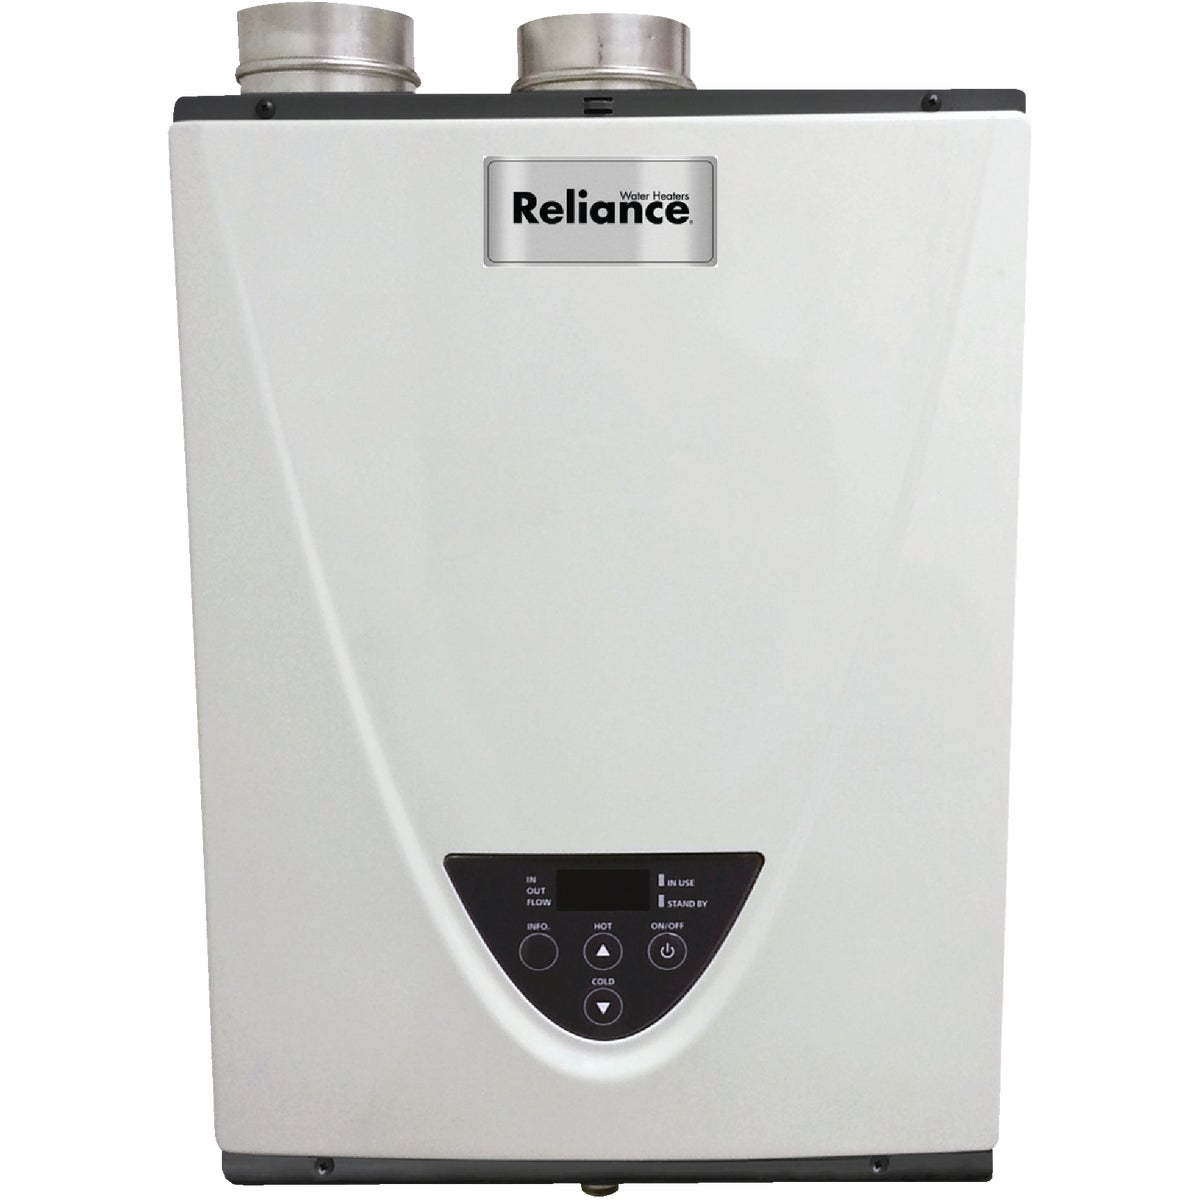 TNKLS NG WATER HEATER - TS-540-GIH by Reliance Added Sales